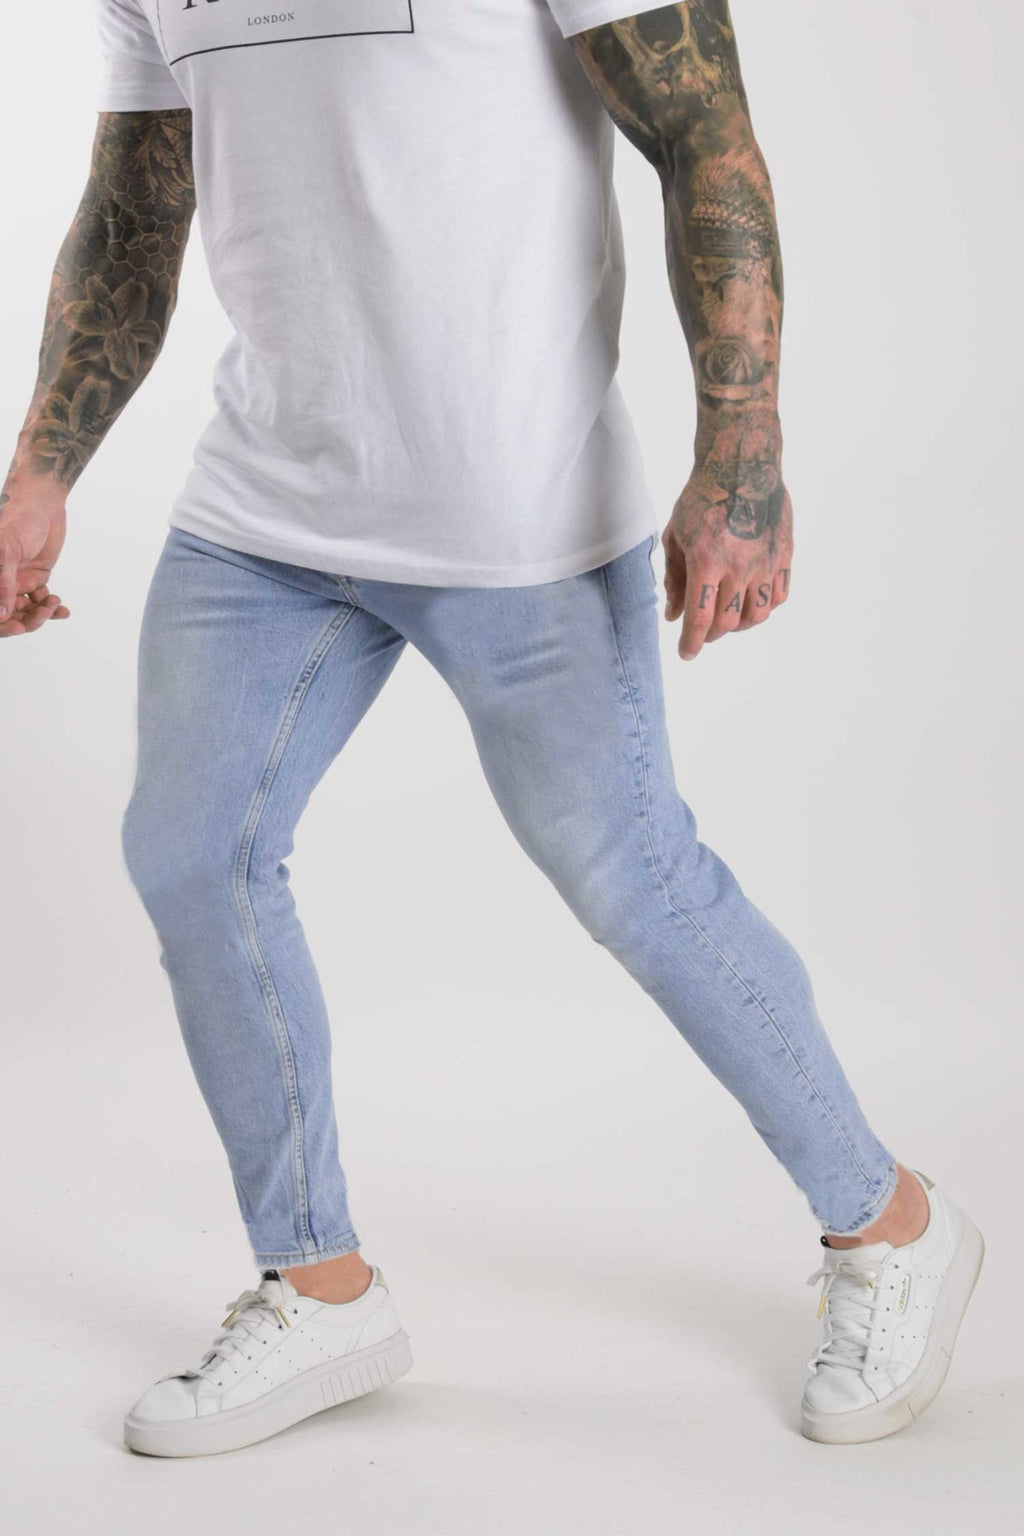 Rose London Slim Denim Jeans Light Wash - Rose London